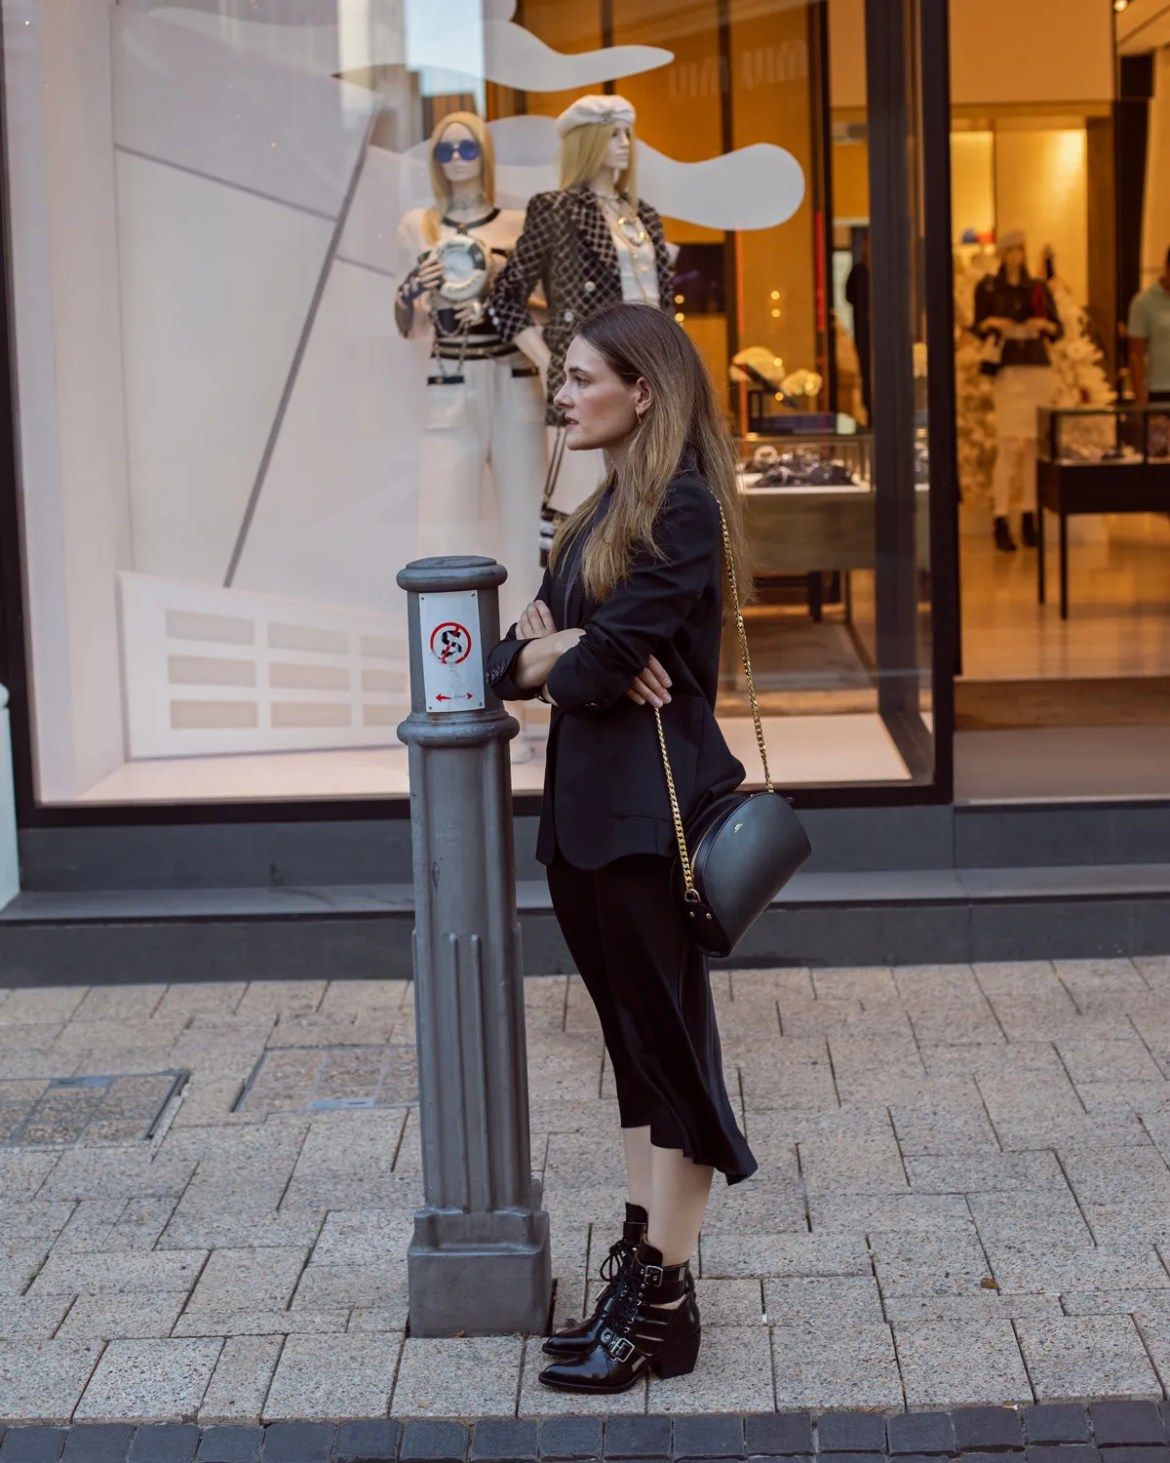 Anine Bing schoolboy blazer and slip midi skirt worn with Chloe Rylee boots by Australian blogger Jenelle from Inspiring Wit talking about how time off of my phone makes me get more creative